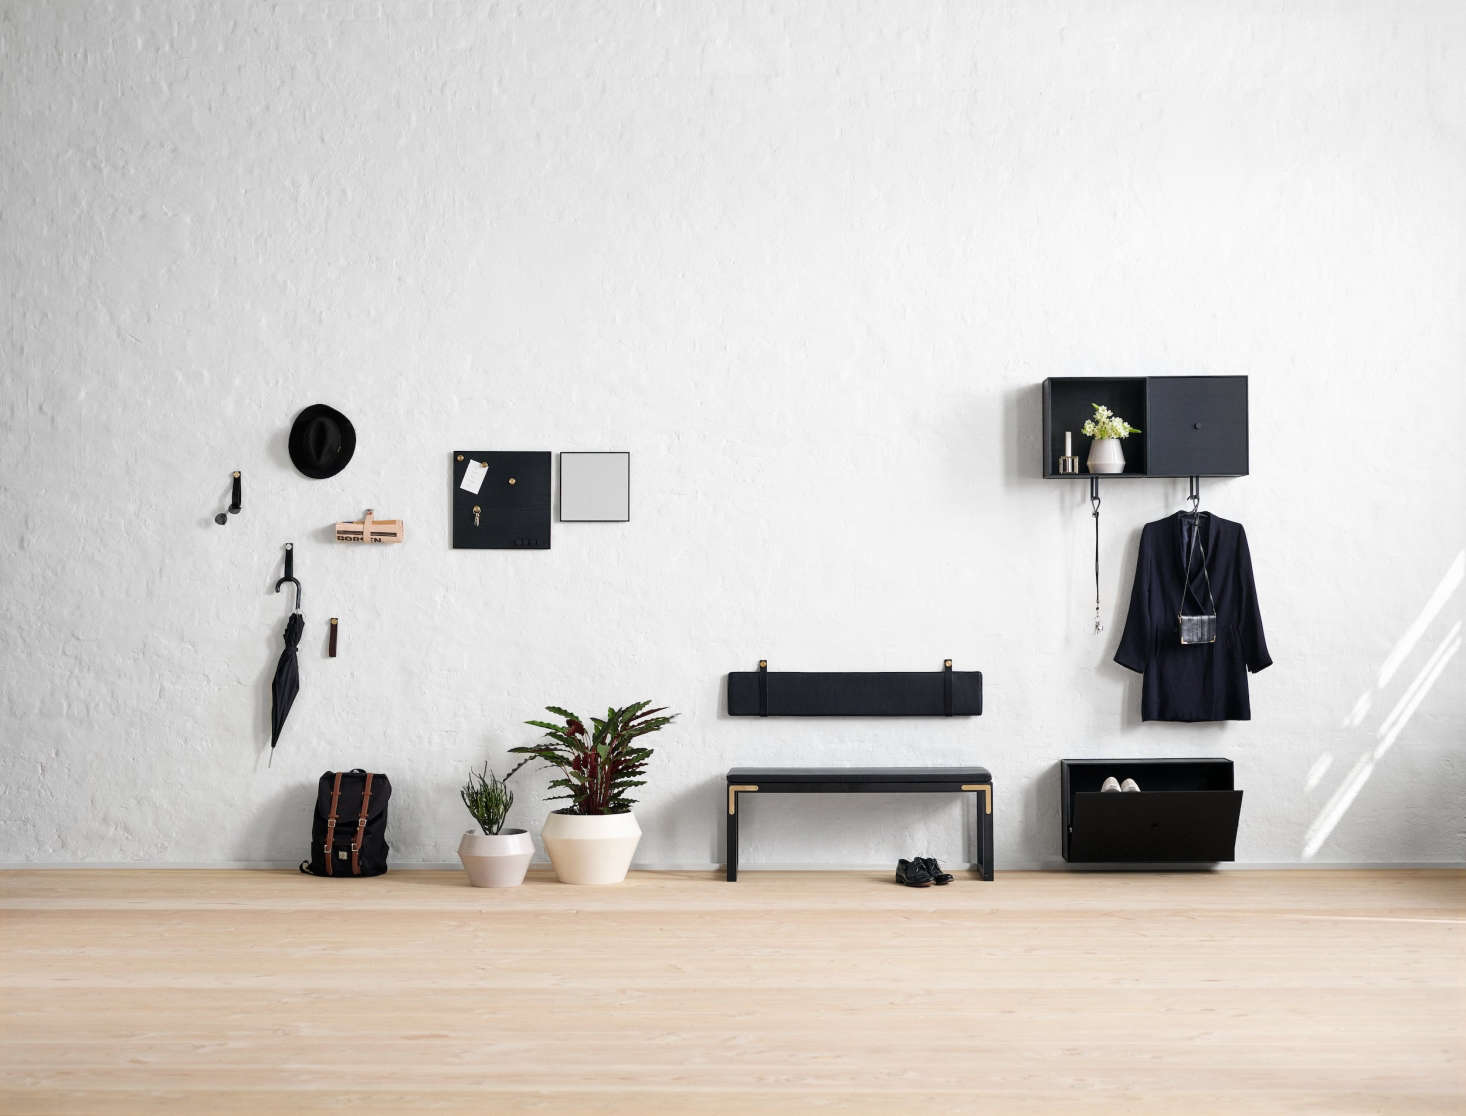 The collection features pared-down solutions for the entryway or hall. Shown here: An elongated landing pad featuring the Conekt Bench (with wall-mounted backrest available in leather or textile) and wall-mounted Frame Shoe Cabinet.